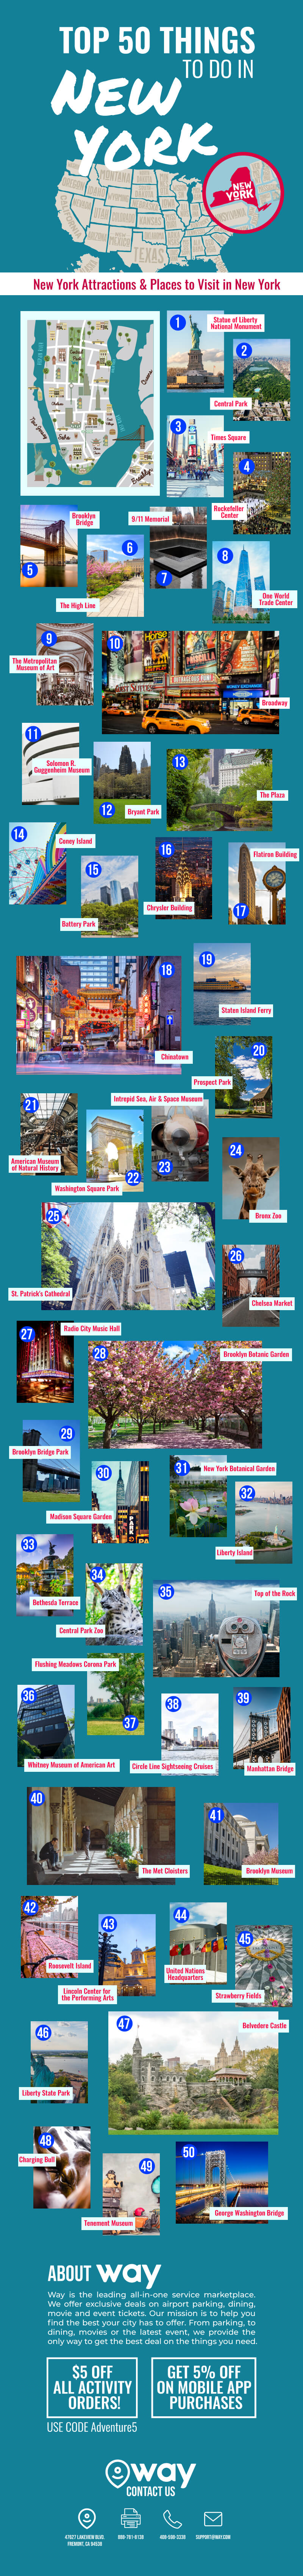 things-to-do-in-new-york-infographic-plaza